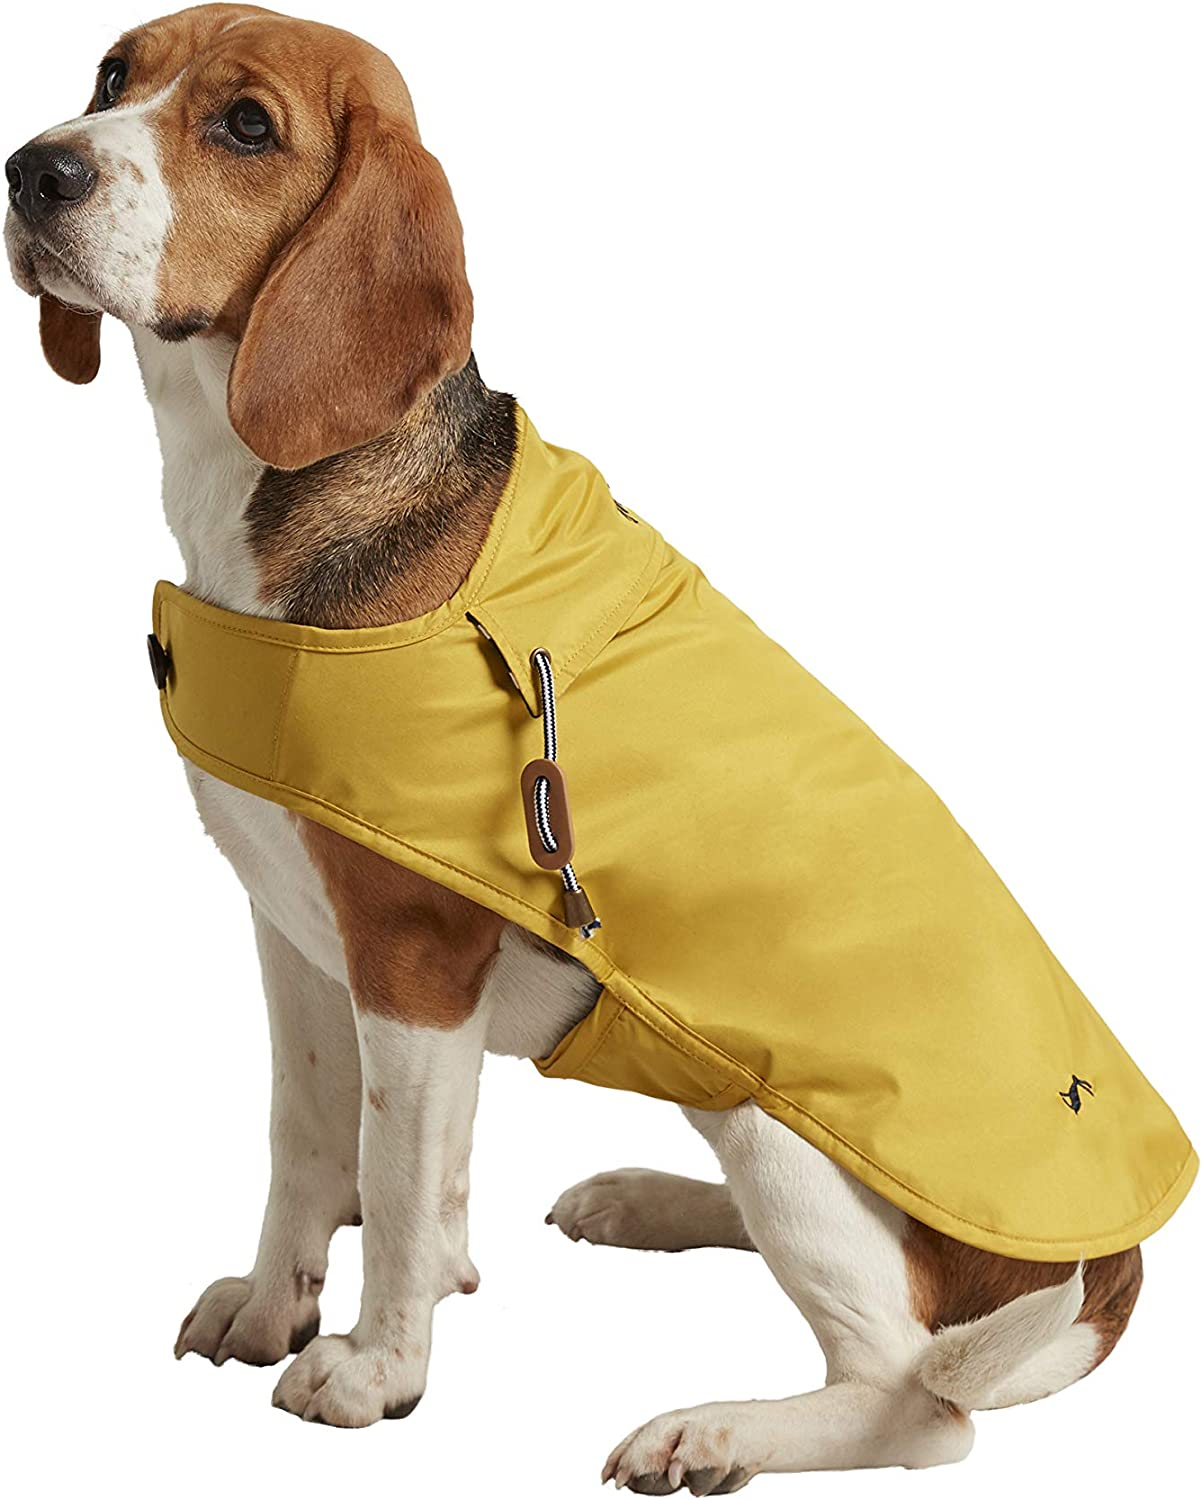 Rosewood Joules Mustard Water Resistant Dog Coat, Small, Mustard Yellow, 0.17 kg